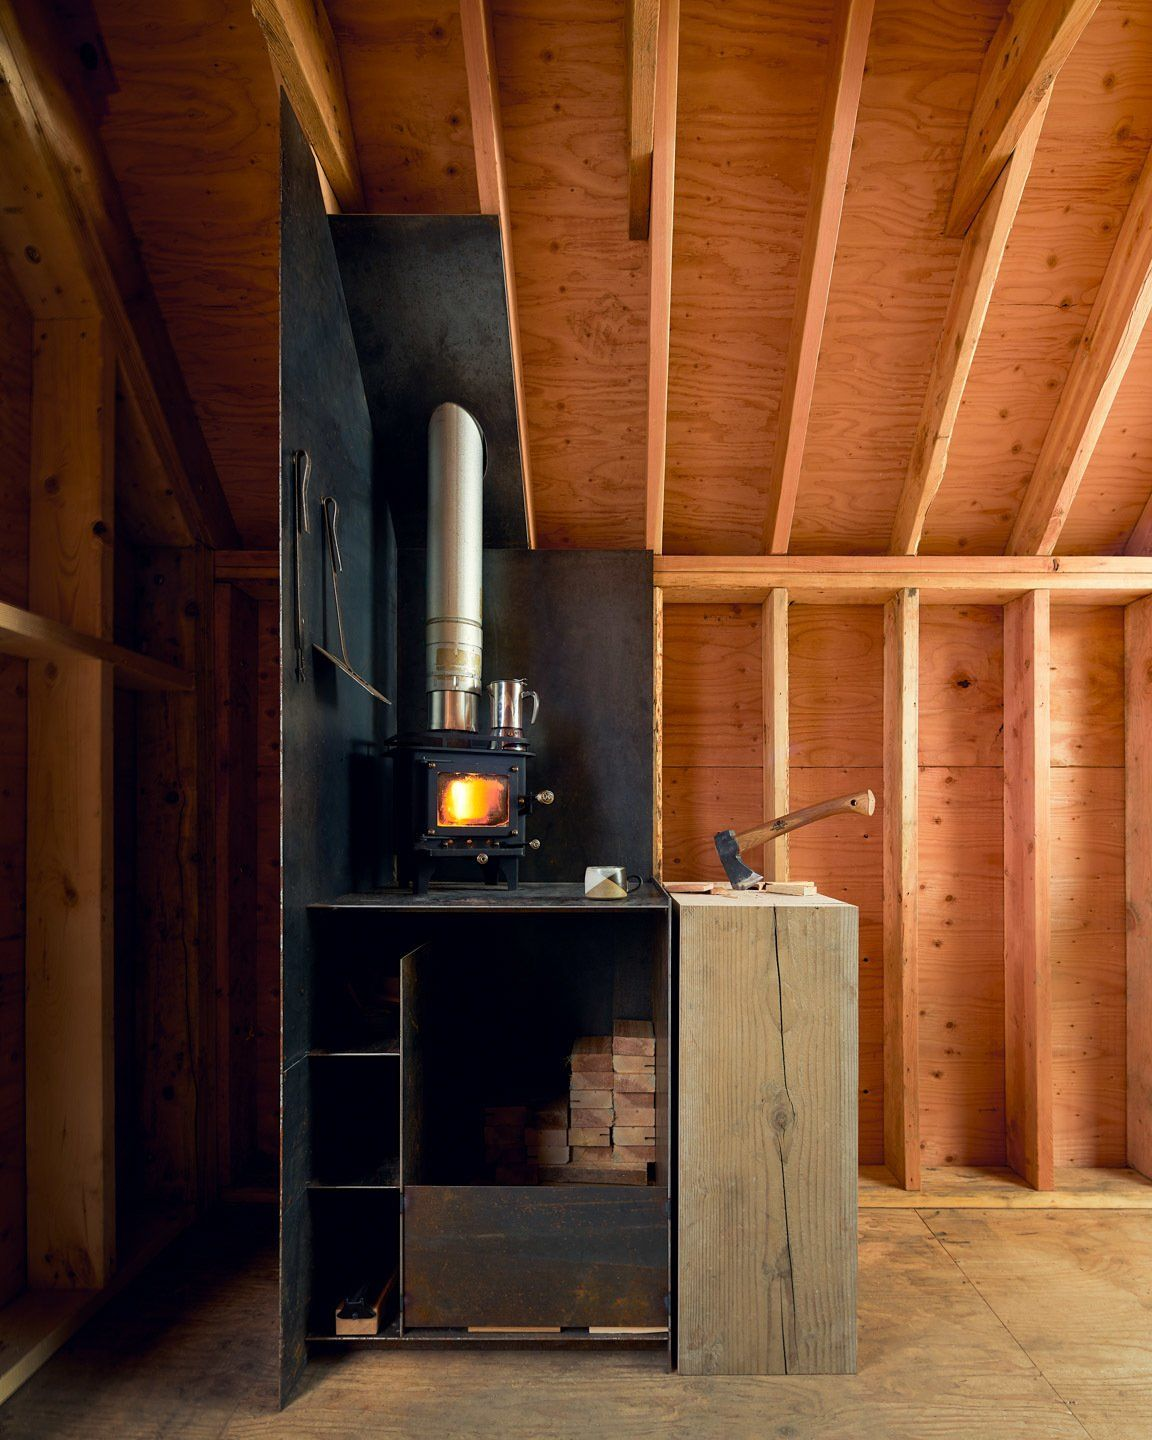 Inside, the cabin looks very cozy, especially with this wood-burning stove in the corner